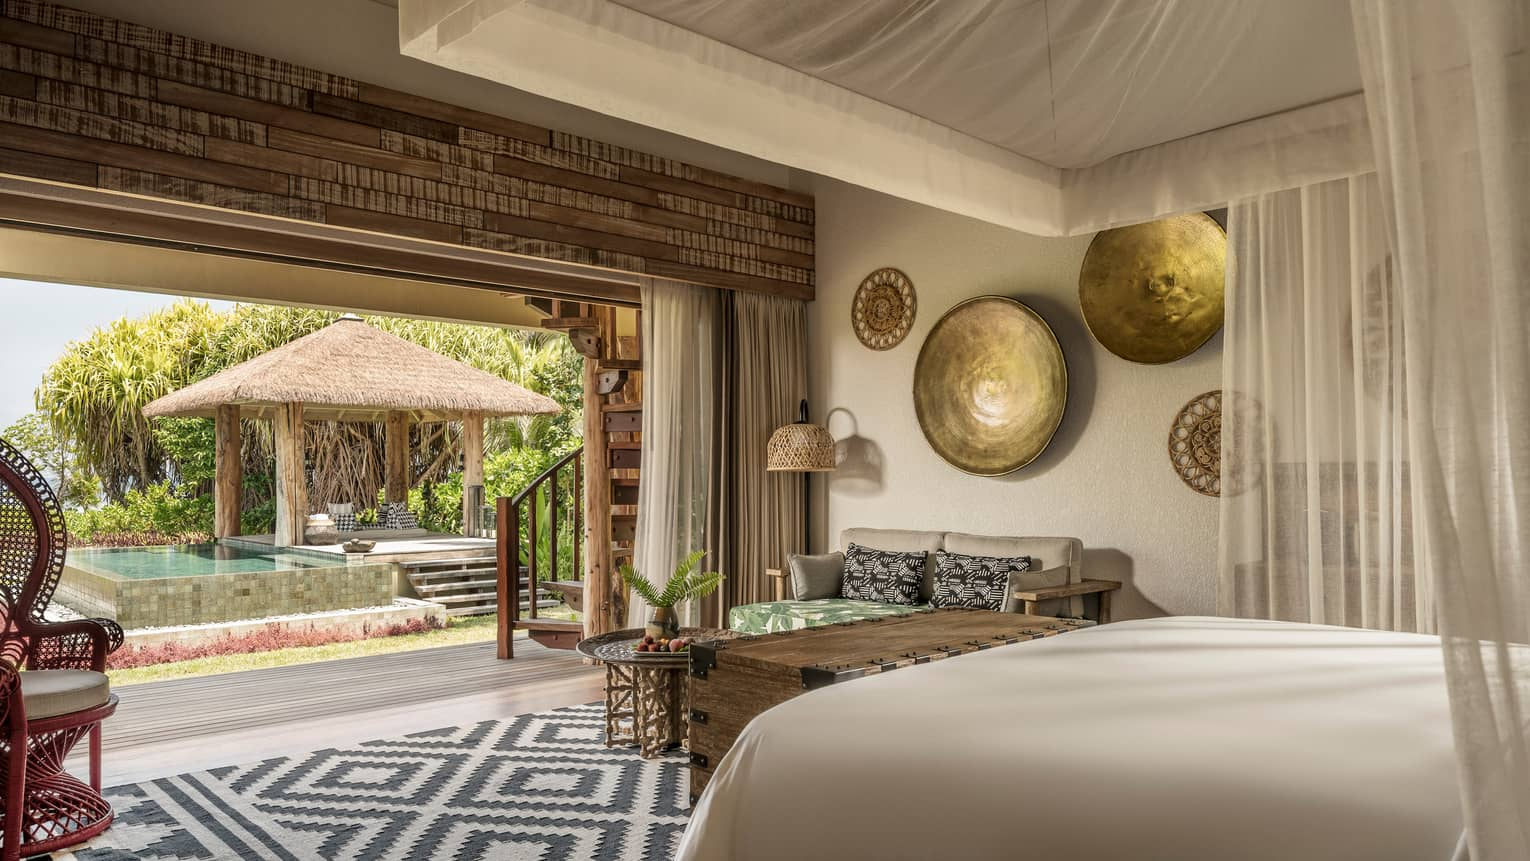 Luxury villa with canopy over bed, artwork on wall, rattan chair opens up to pool